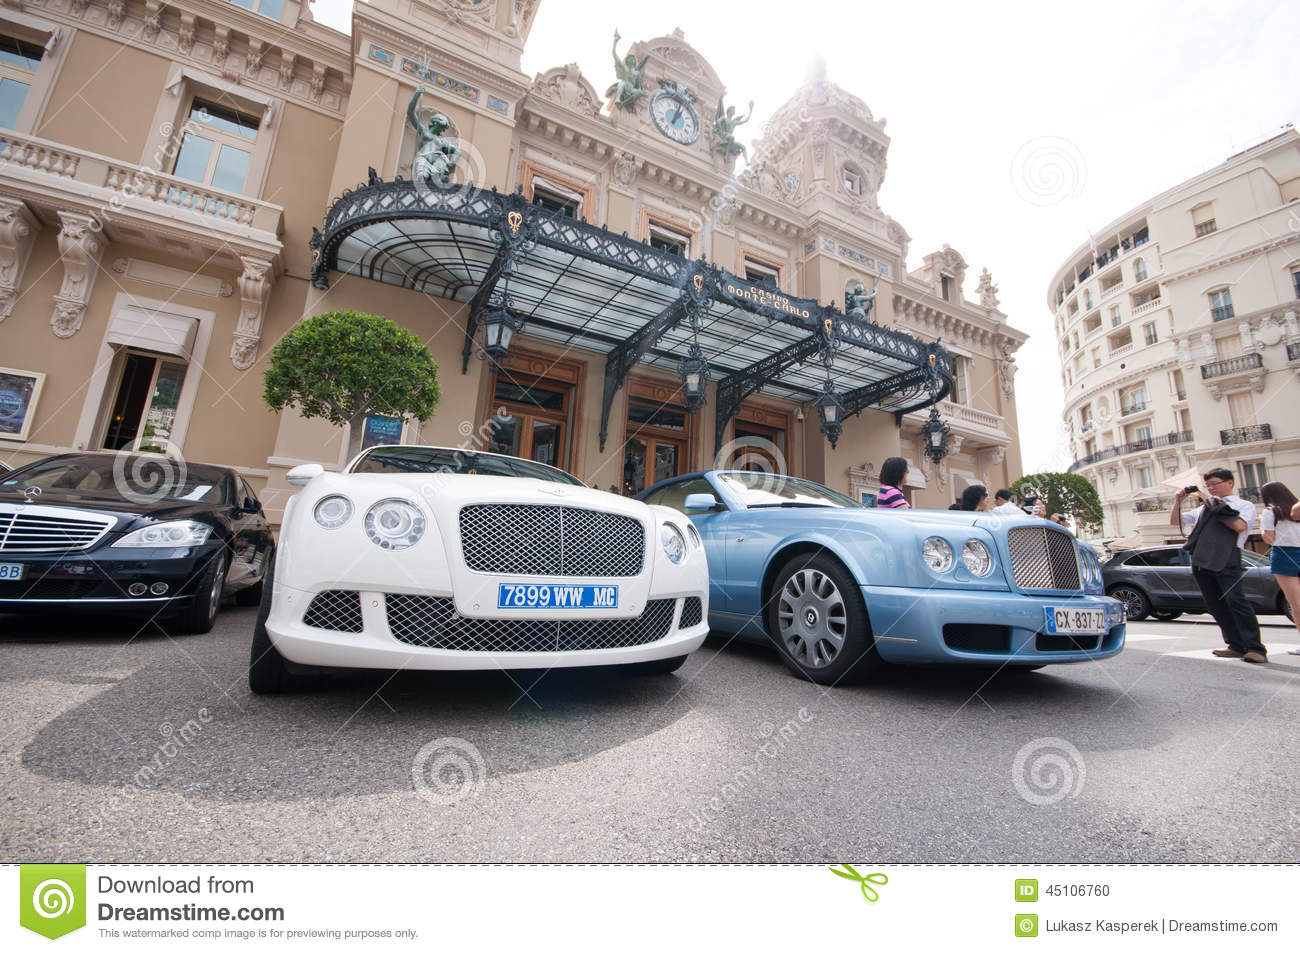 Monaco and cars not casino online casino slo